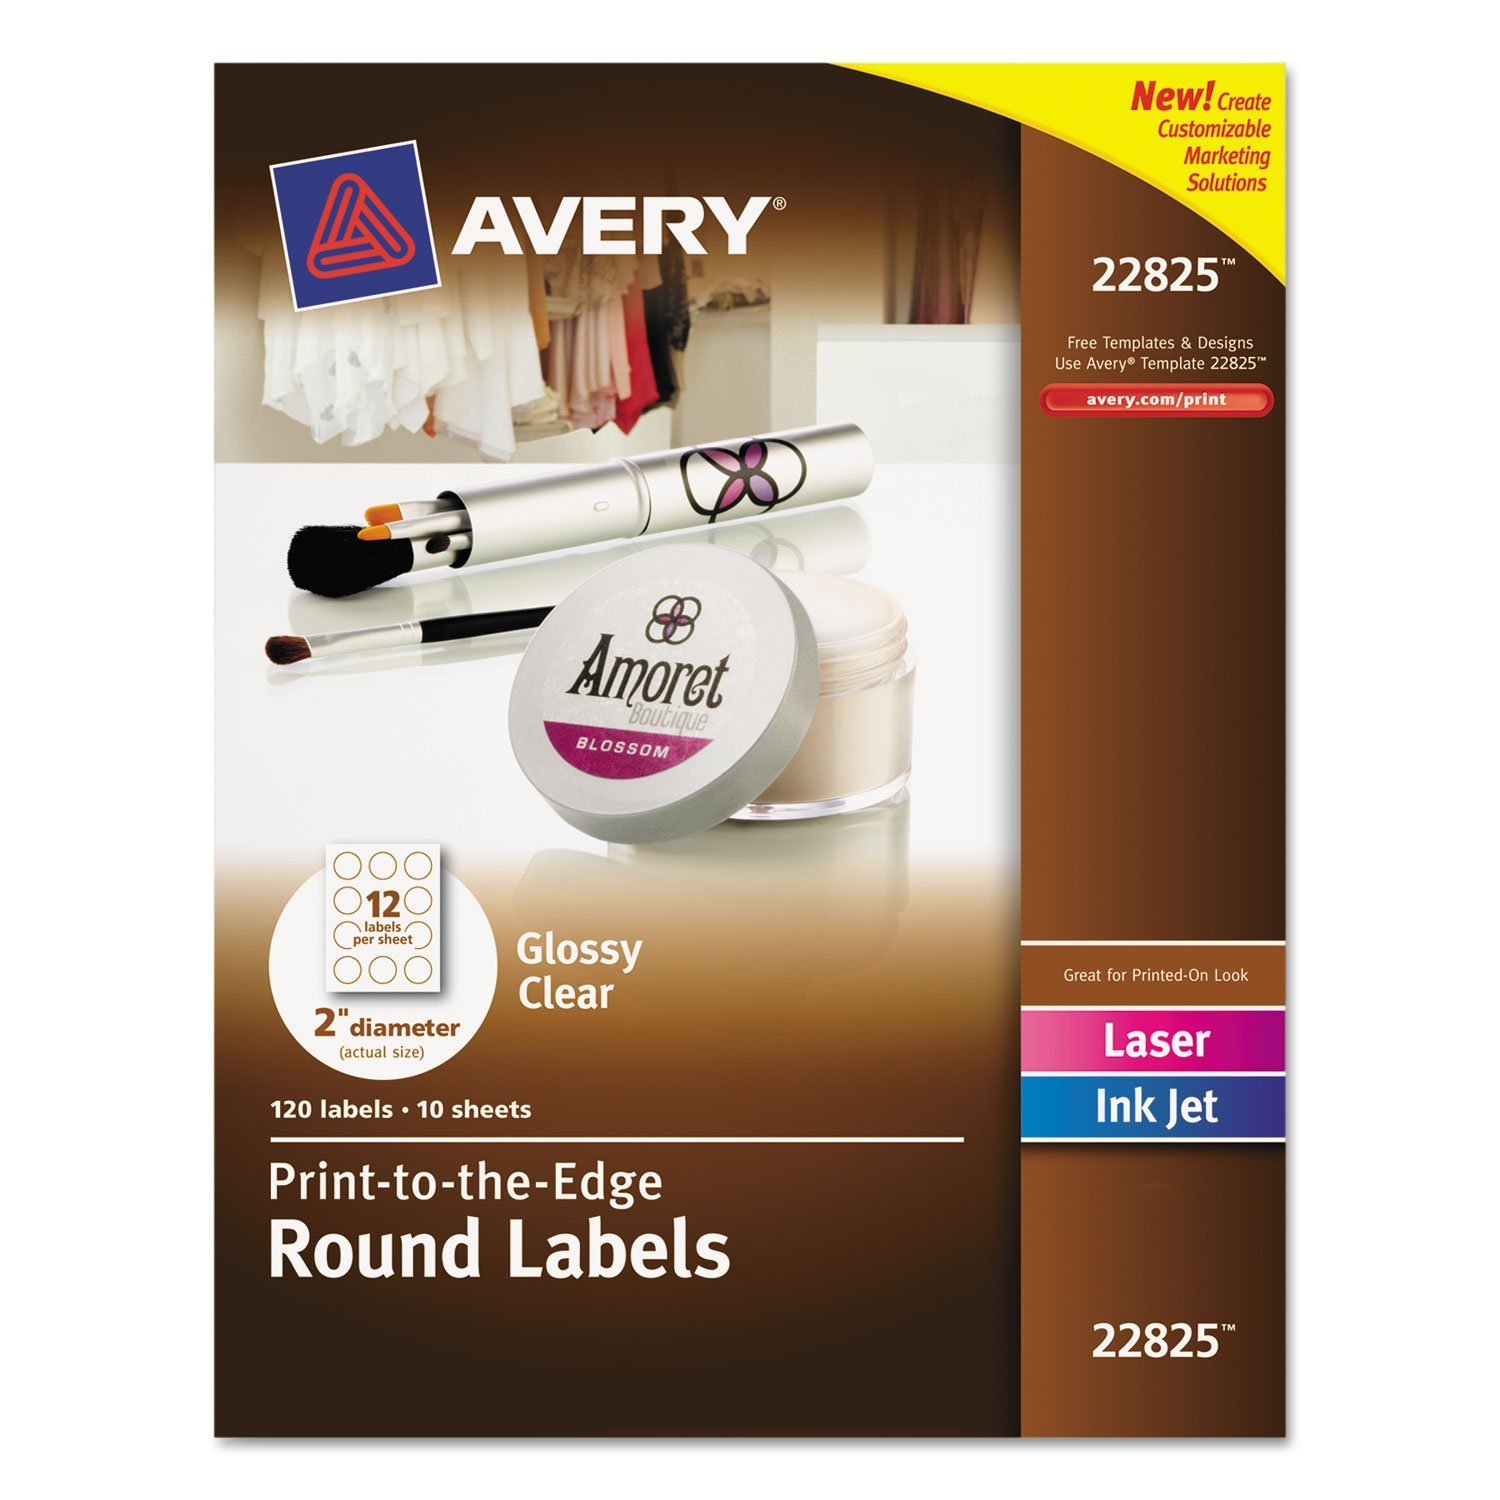 Avery Round Print-to-the-Edge Labels, 2 inch dia, Glossy Clear, 120/Pack